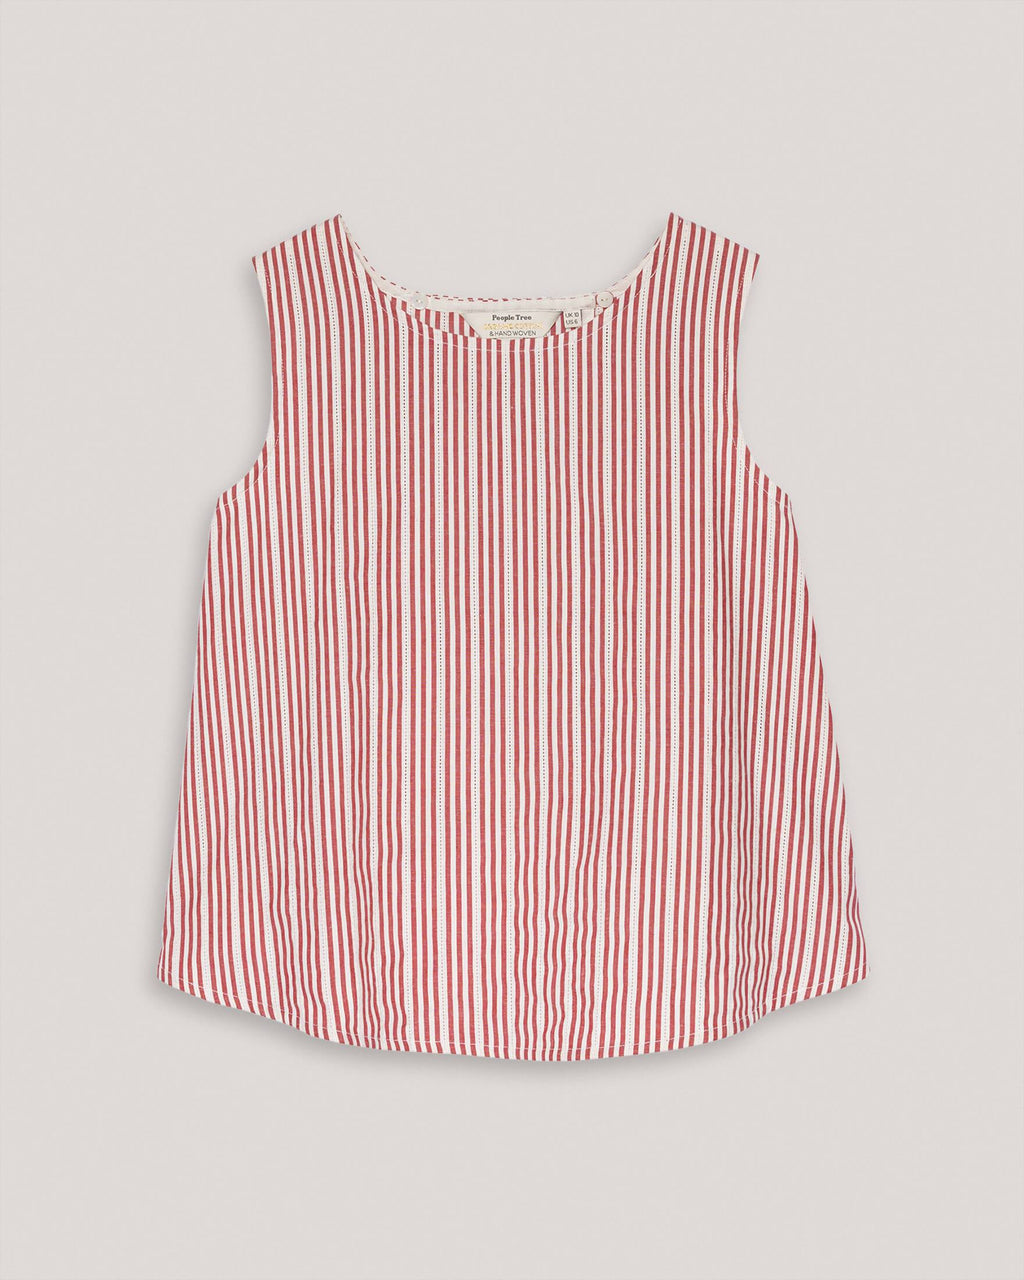 variant_1 | EN Top with Stripes Red White Women People Tree | DE Top mit Streifen Rot Weiß Damen People Tree